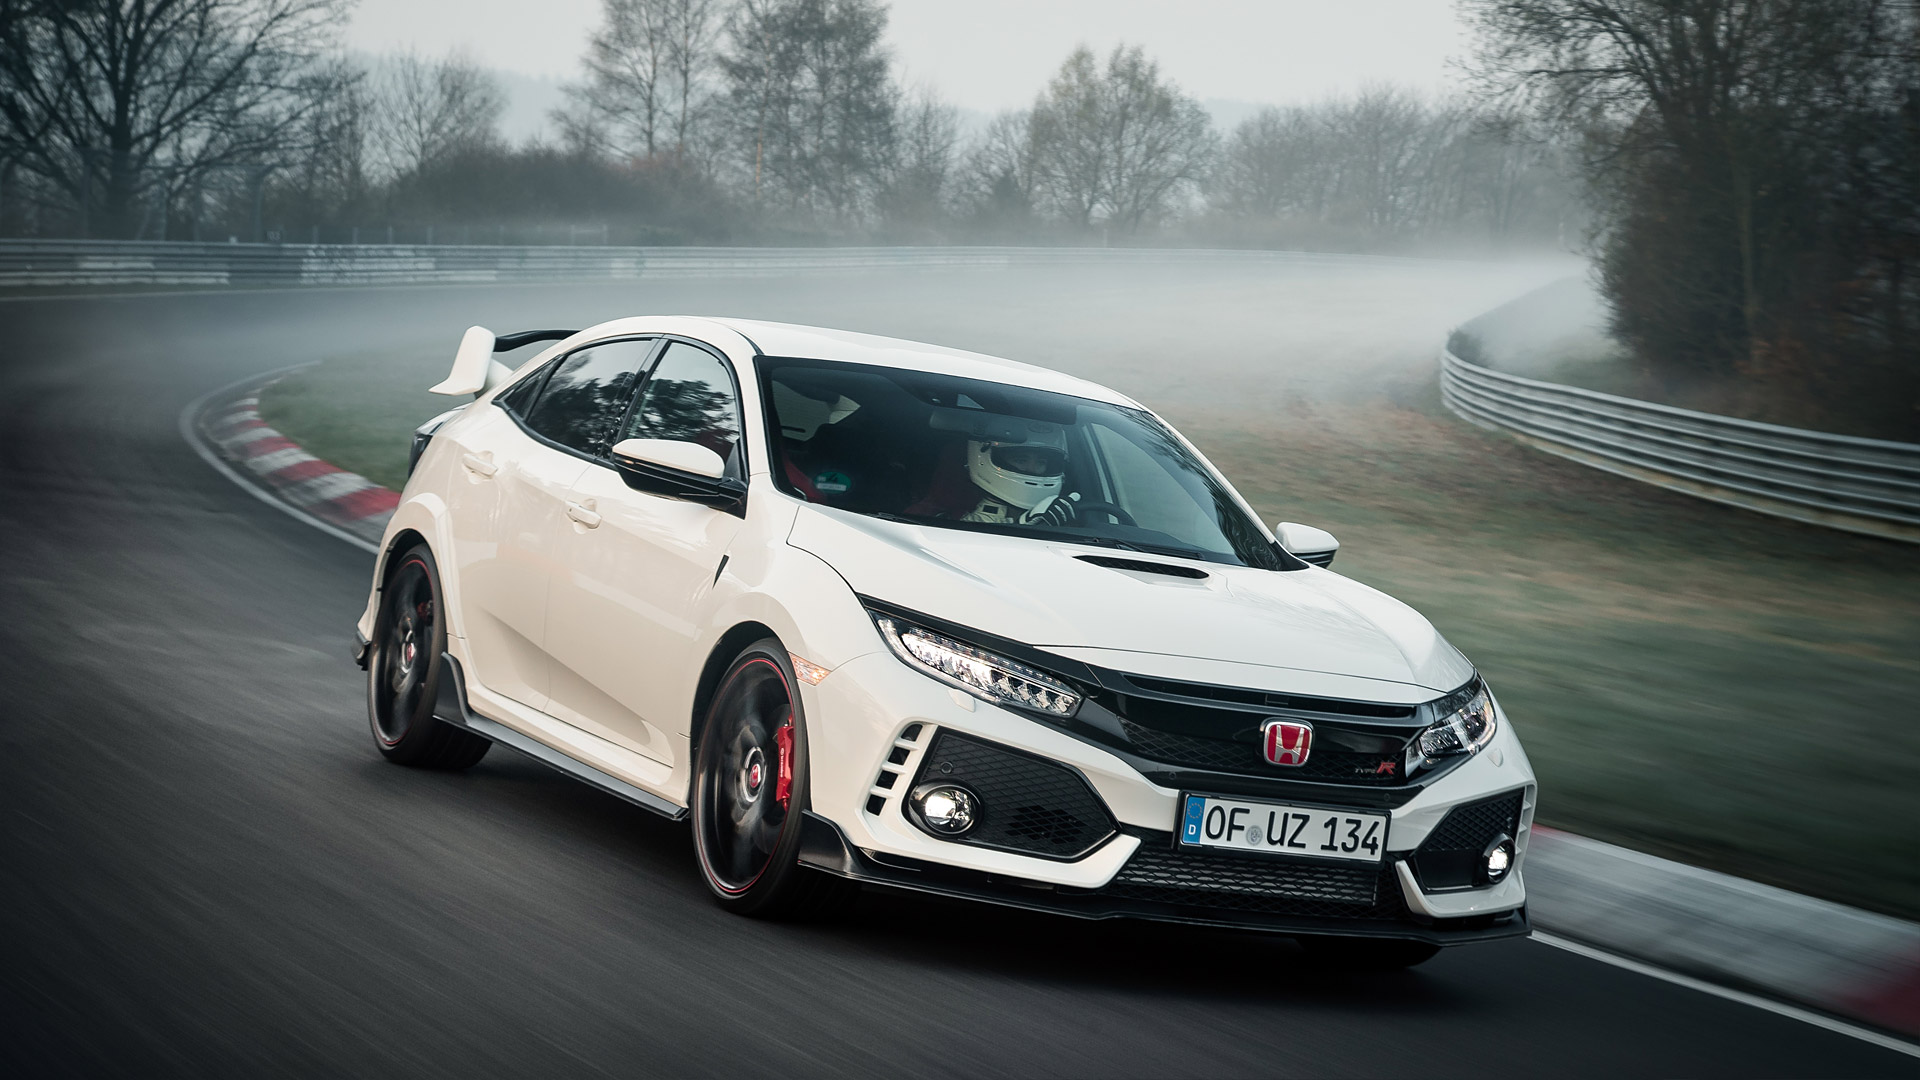 2018 Honda Civic Type R Wallpapers HD Images   WSupercars 1920x1080